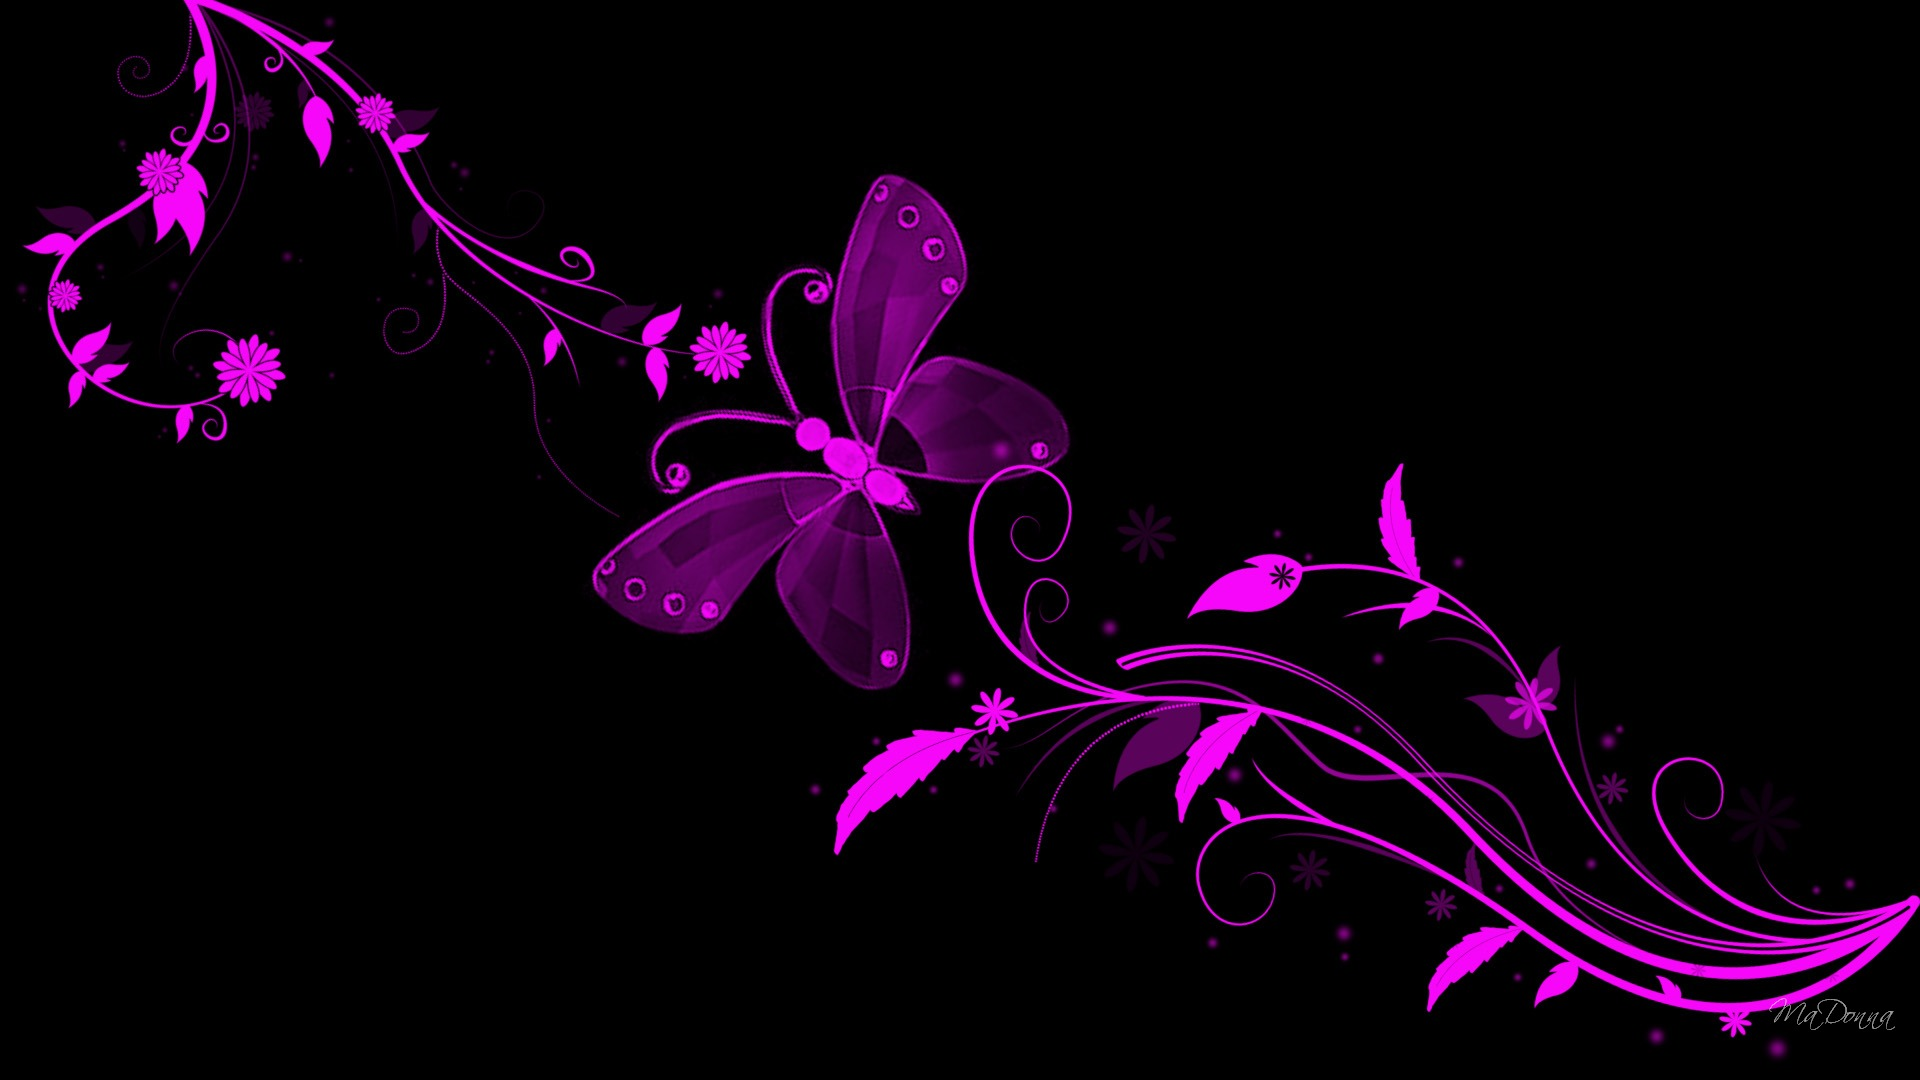 Butterfly-Download-Black-And-Pink-Butterfly-Flowers-Abstract-Bright-Butterfly-wallpaper-wp3403572